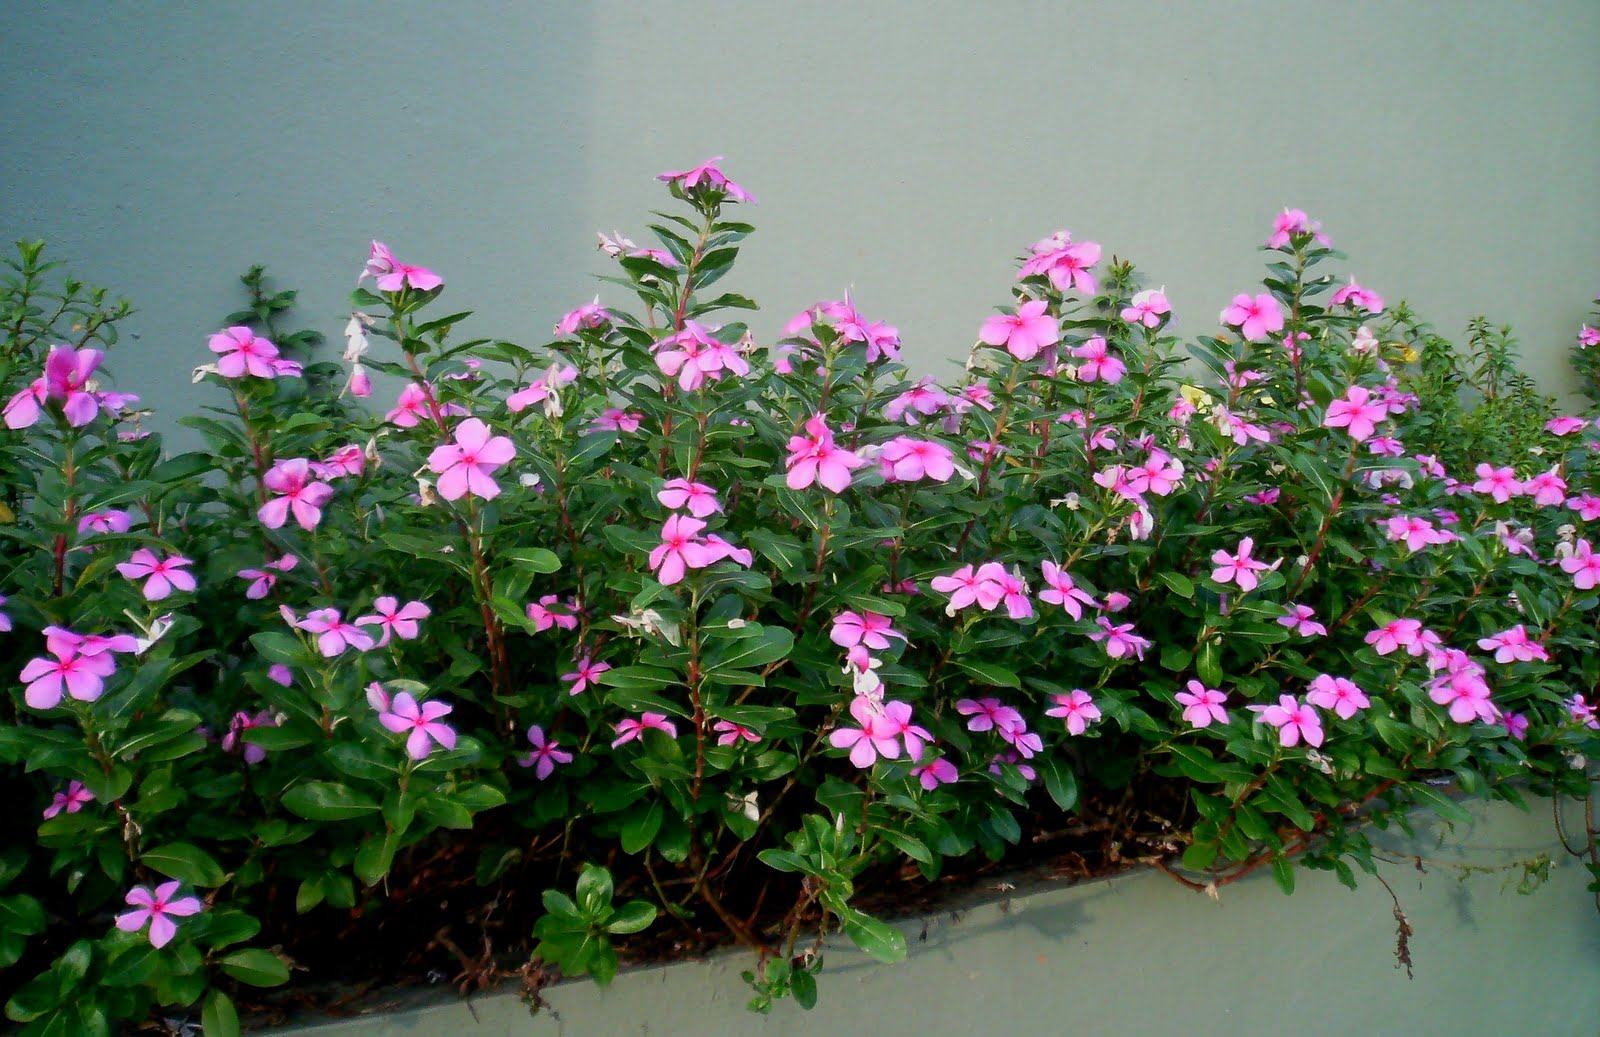 vinca plants 200 rooted vinca minor plants aka periwinkle due to it's blue color, great groundcover plant it grows well in shaded areas, looks beautiful planted around trees.